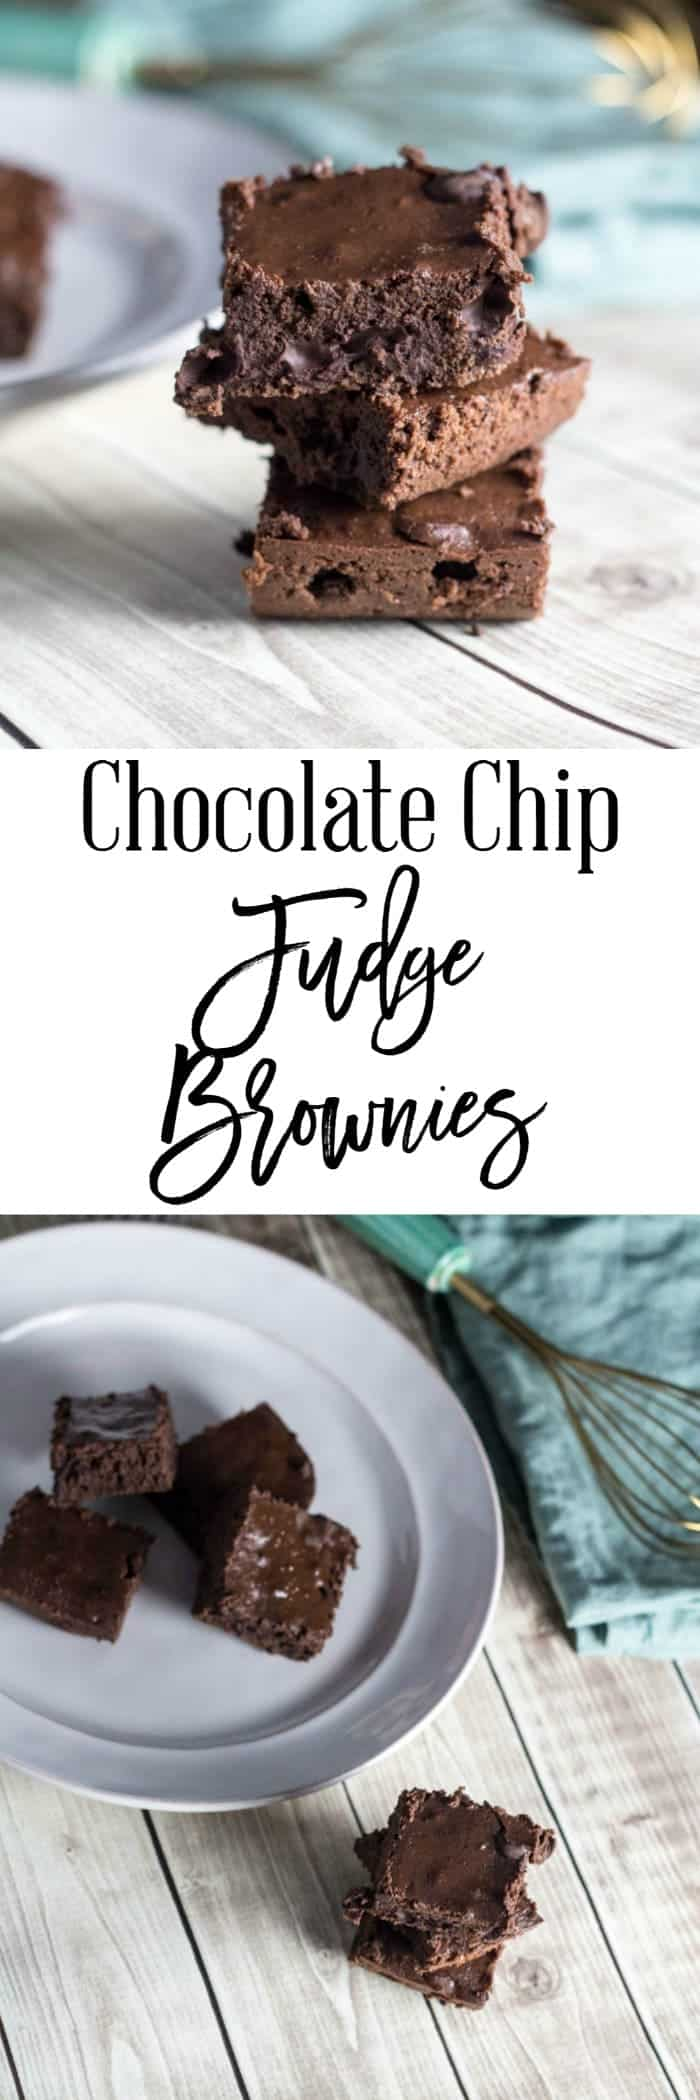 An ooey-gooey brownie can change your whole day and mood.  These chocolate chip fudge brownies are perfect to make quickly when you are craving chocolate.  They are only 5 SmartPoints on Weight Watchers and bursting with chocolate chips.